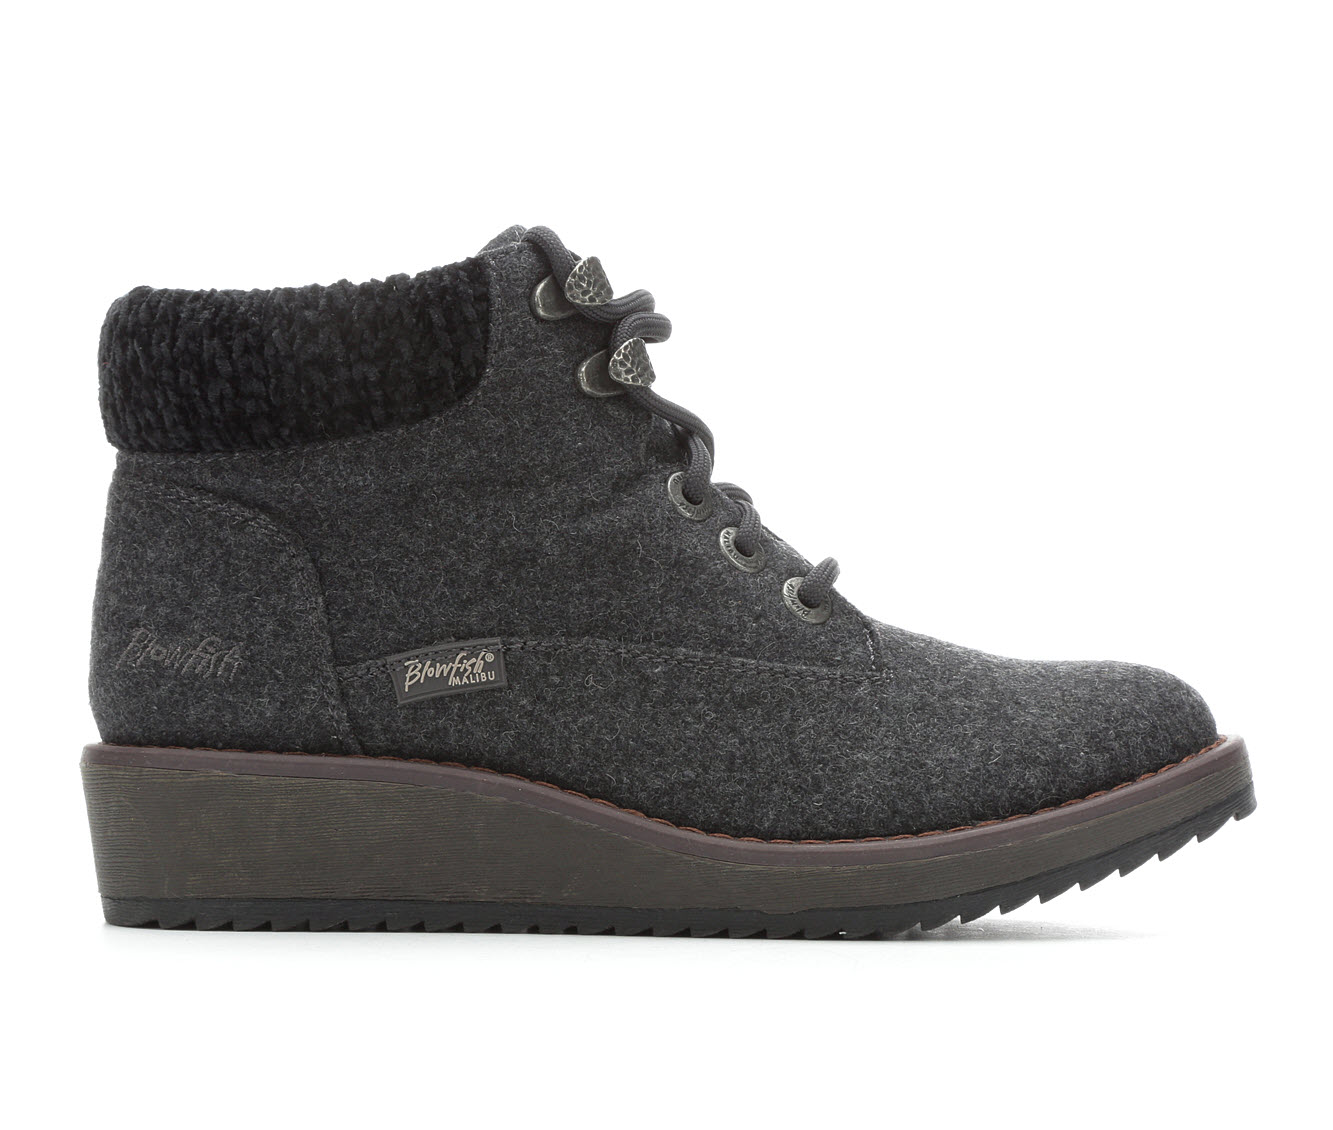 Blowfish Malibu Comet Women's Boots (Gray - Faux Leather)